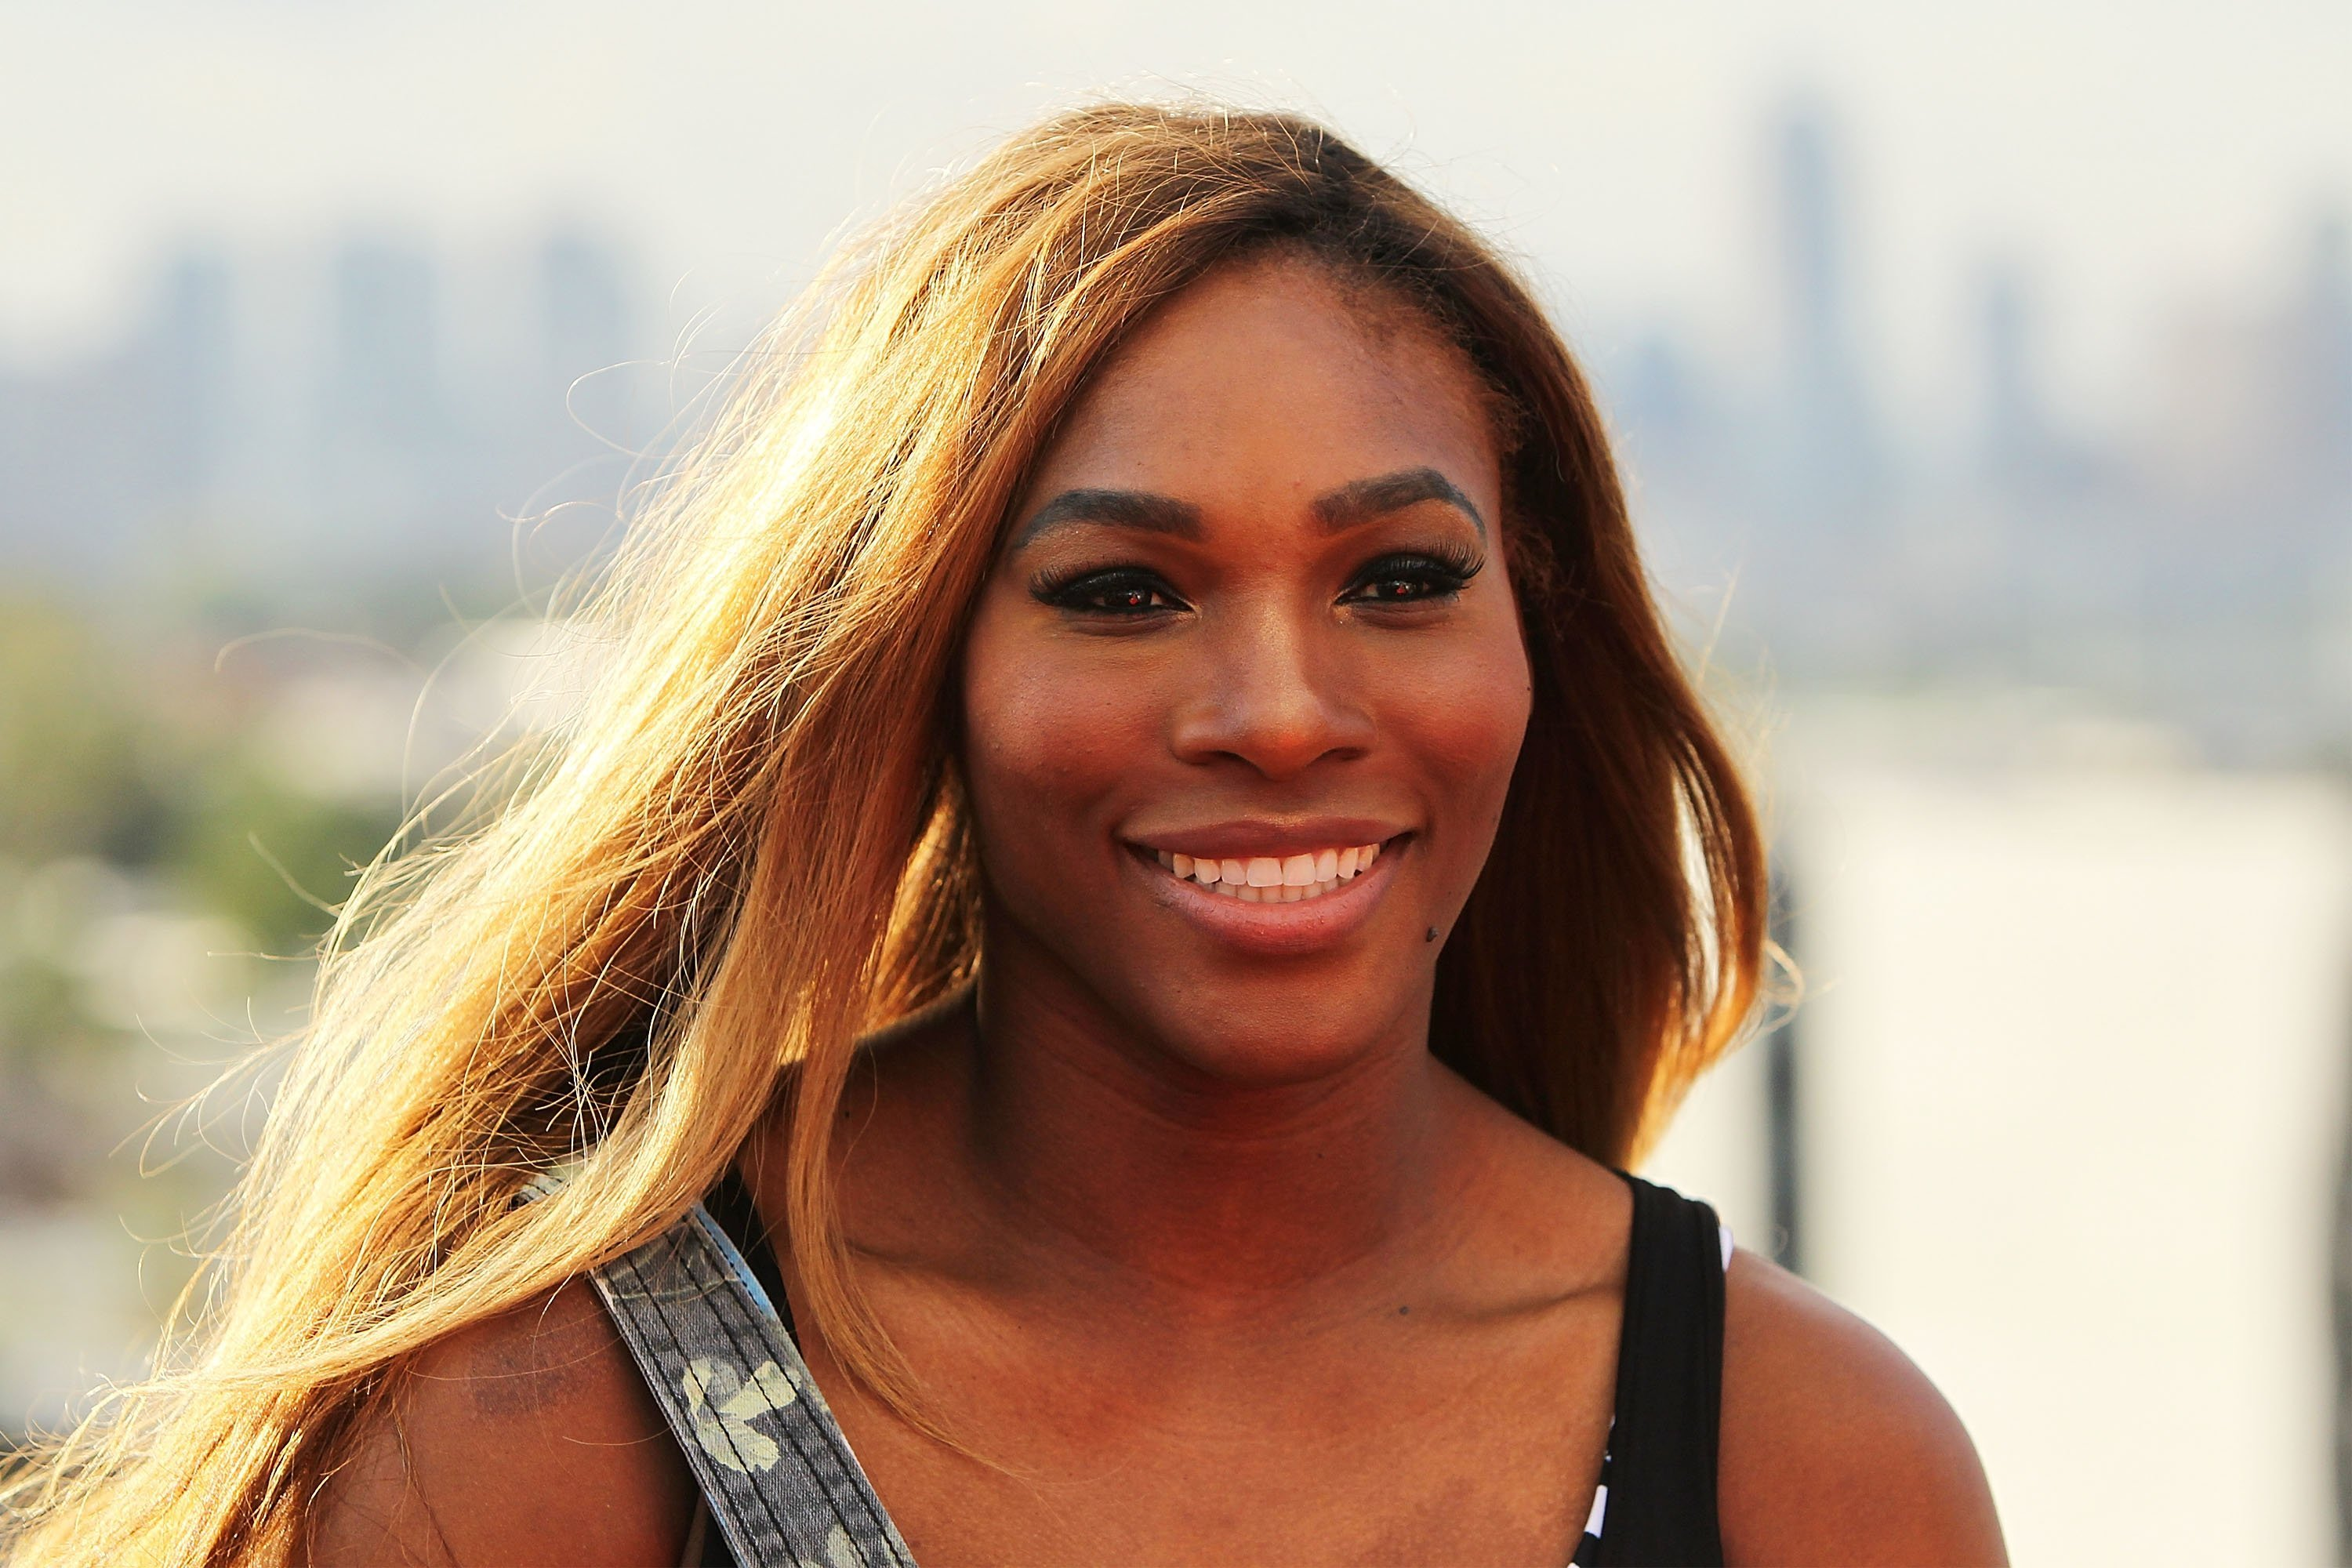 Serena Williams during a meet and greet in Melbourne, Australia in January 2014. | Photo: Getty Images